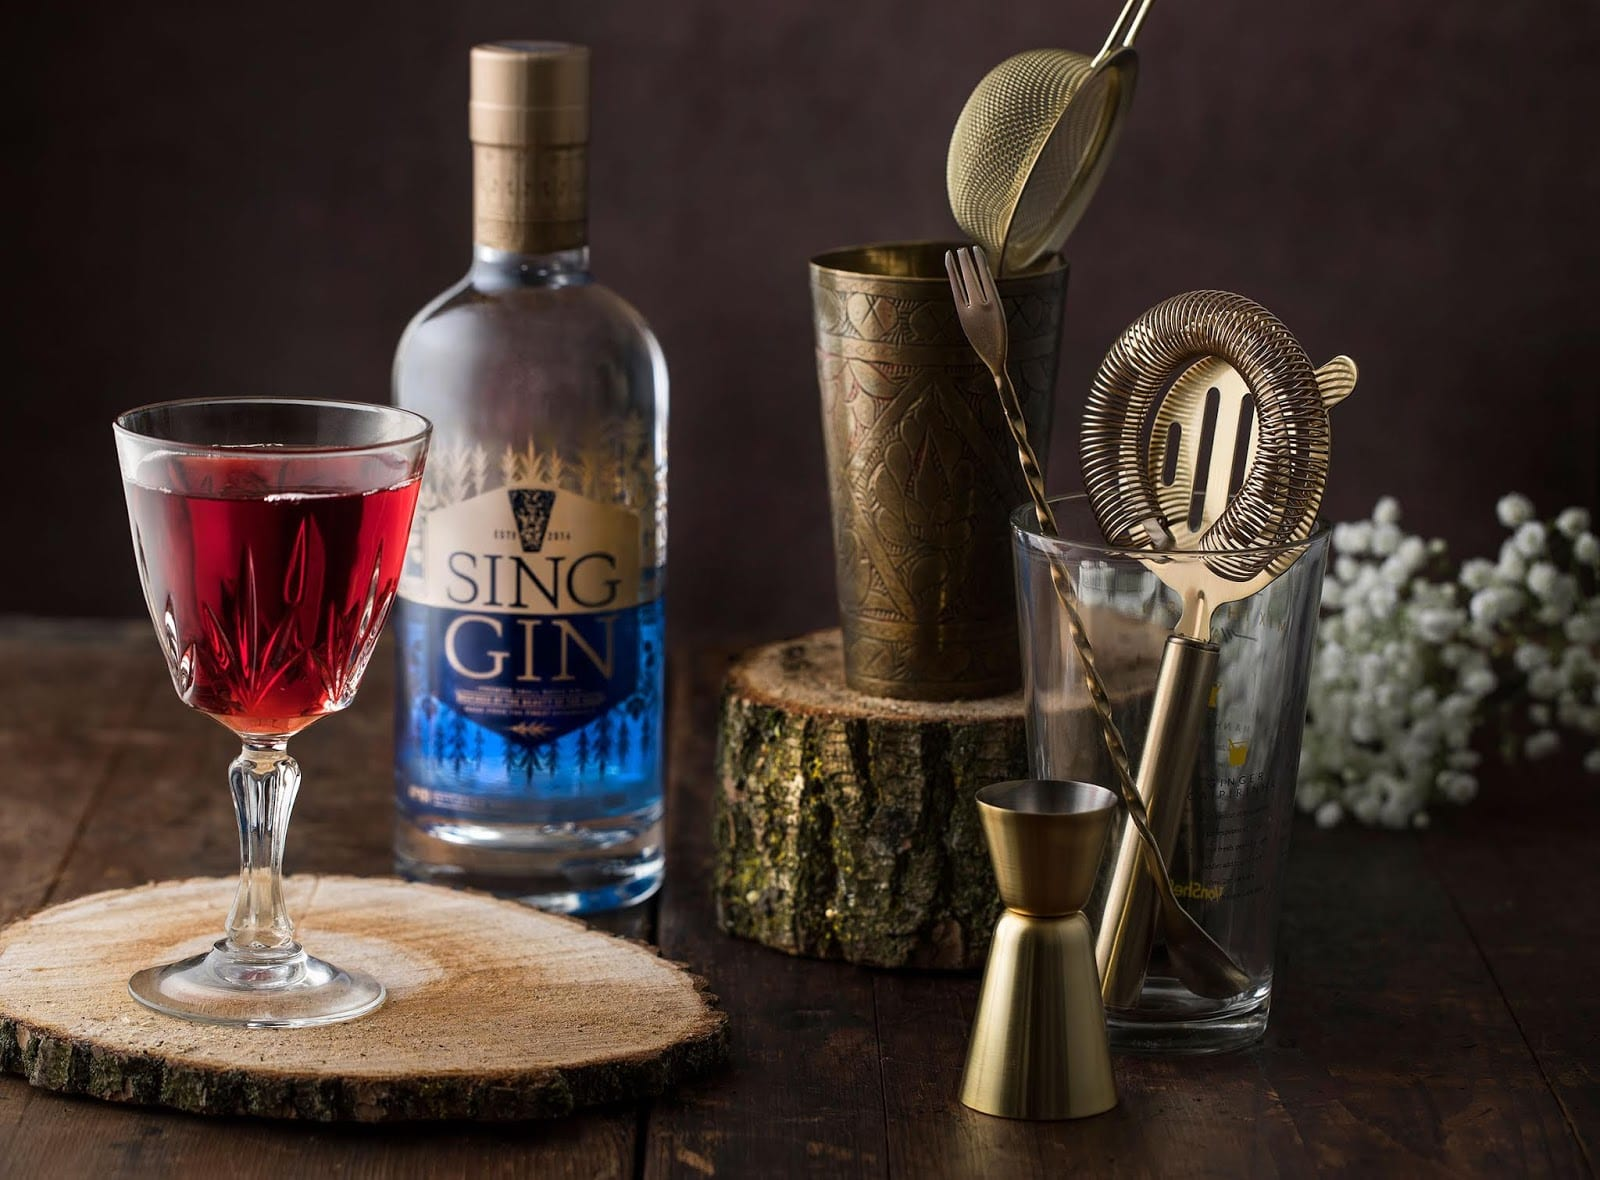 Sing Gin 03 - Ach, tie obaly – Sing Gin